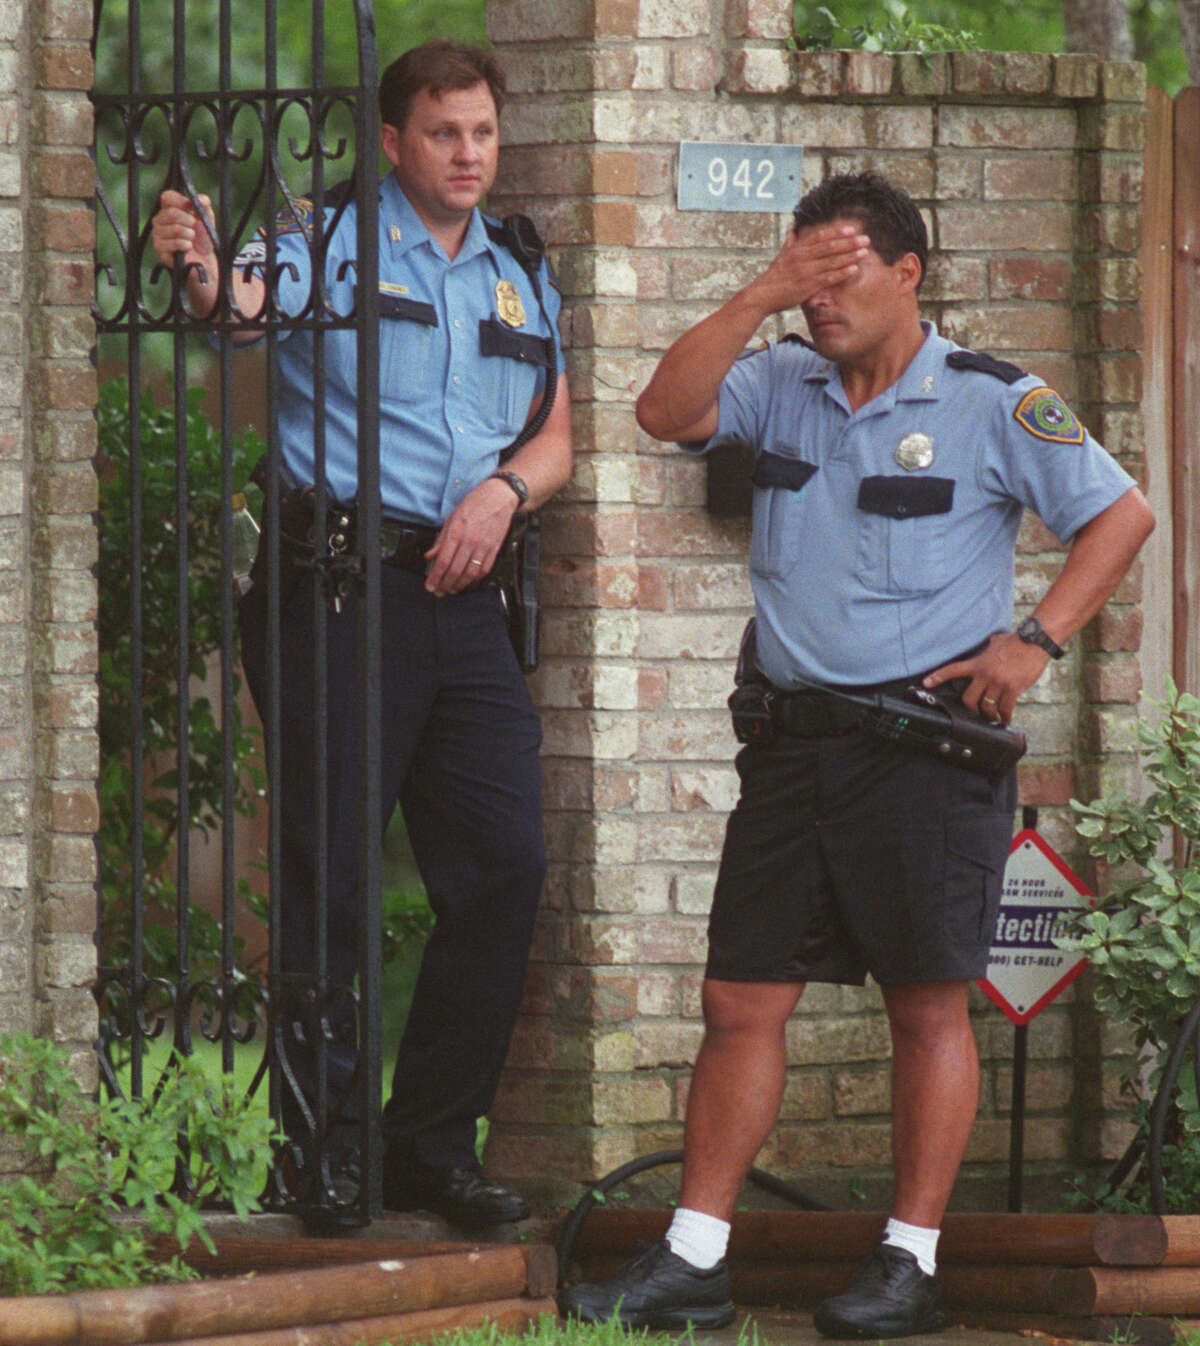 Houston police officers stand outside the house where five children were found dead in Clear Lake on Wednesday, June 20, 2001. The mother, Andrea Pia Yates, was said to be on medication for depression and was arrested and charged with five counts of capital murder.